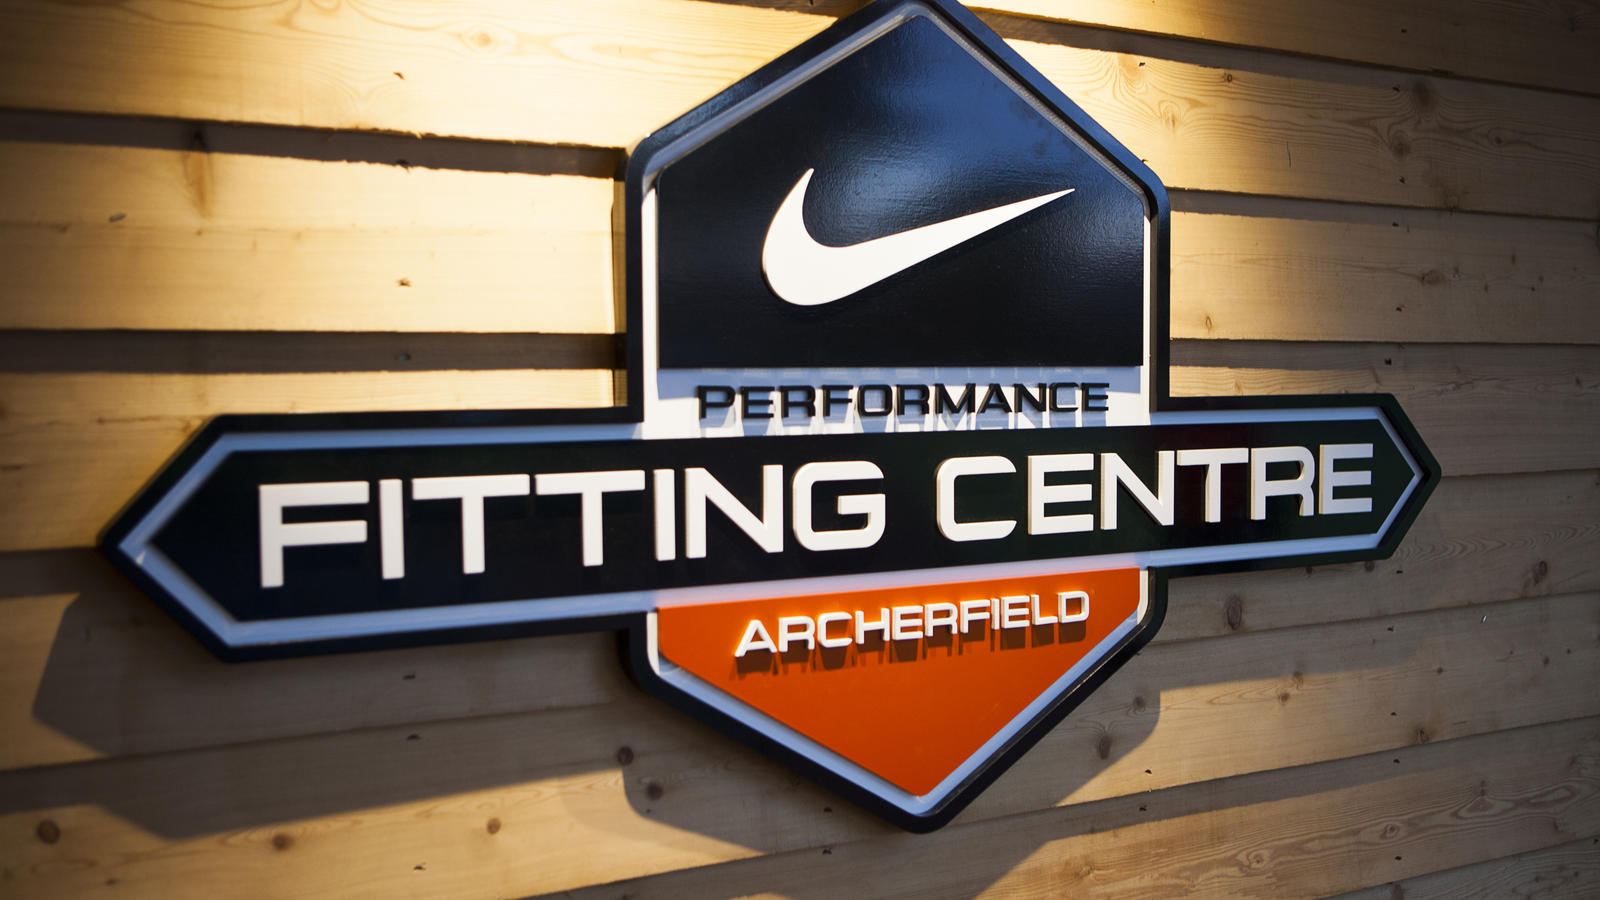 Nike Performance Centre at Archerfield